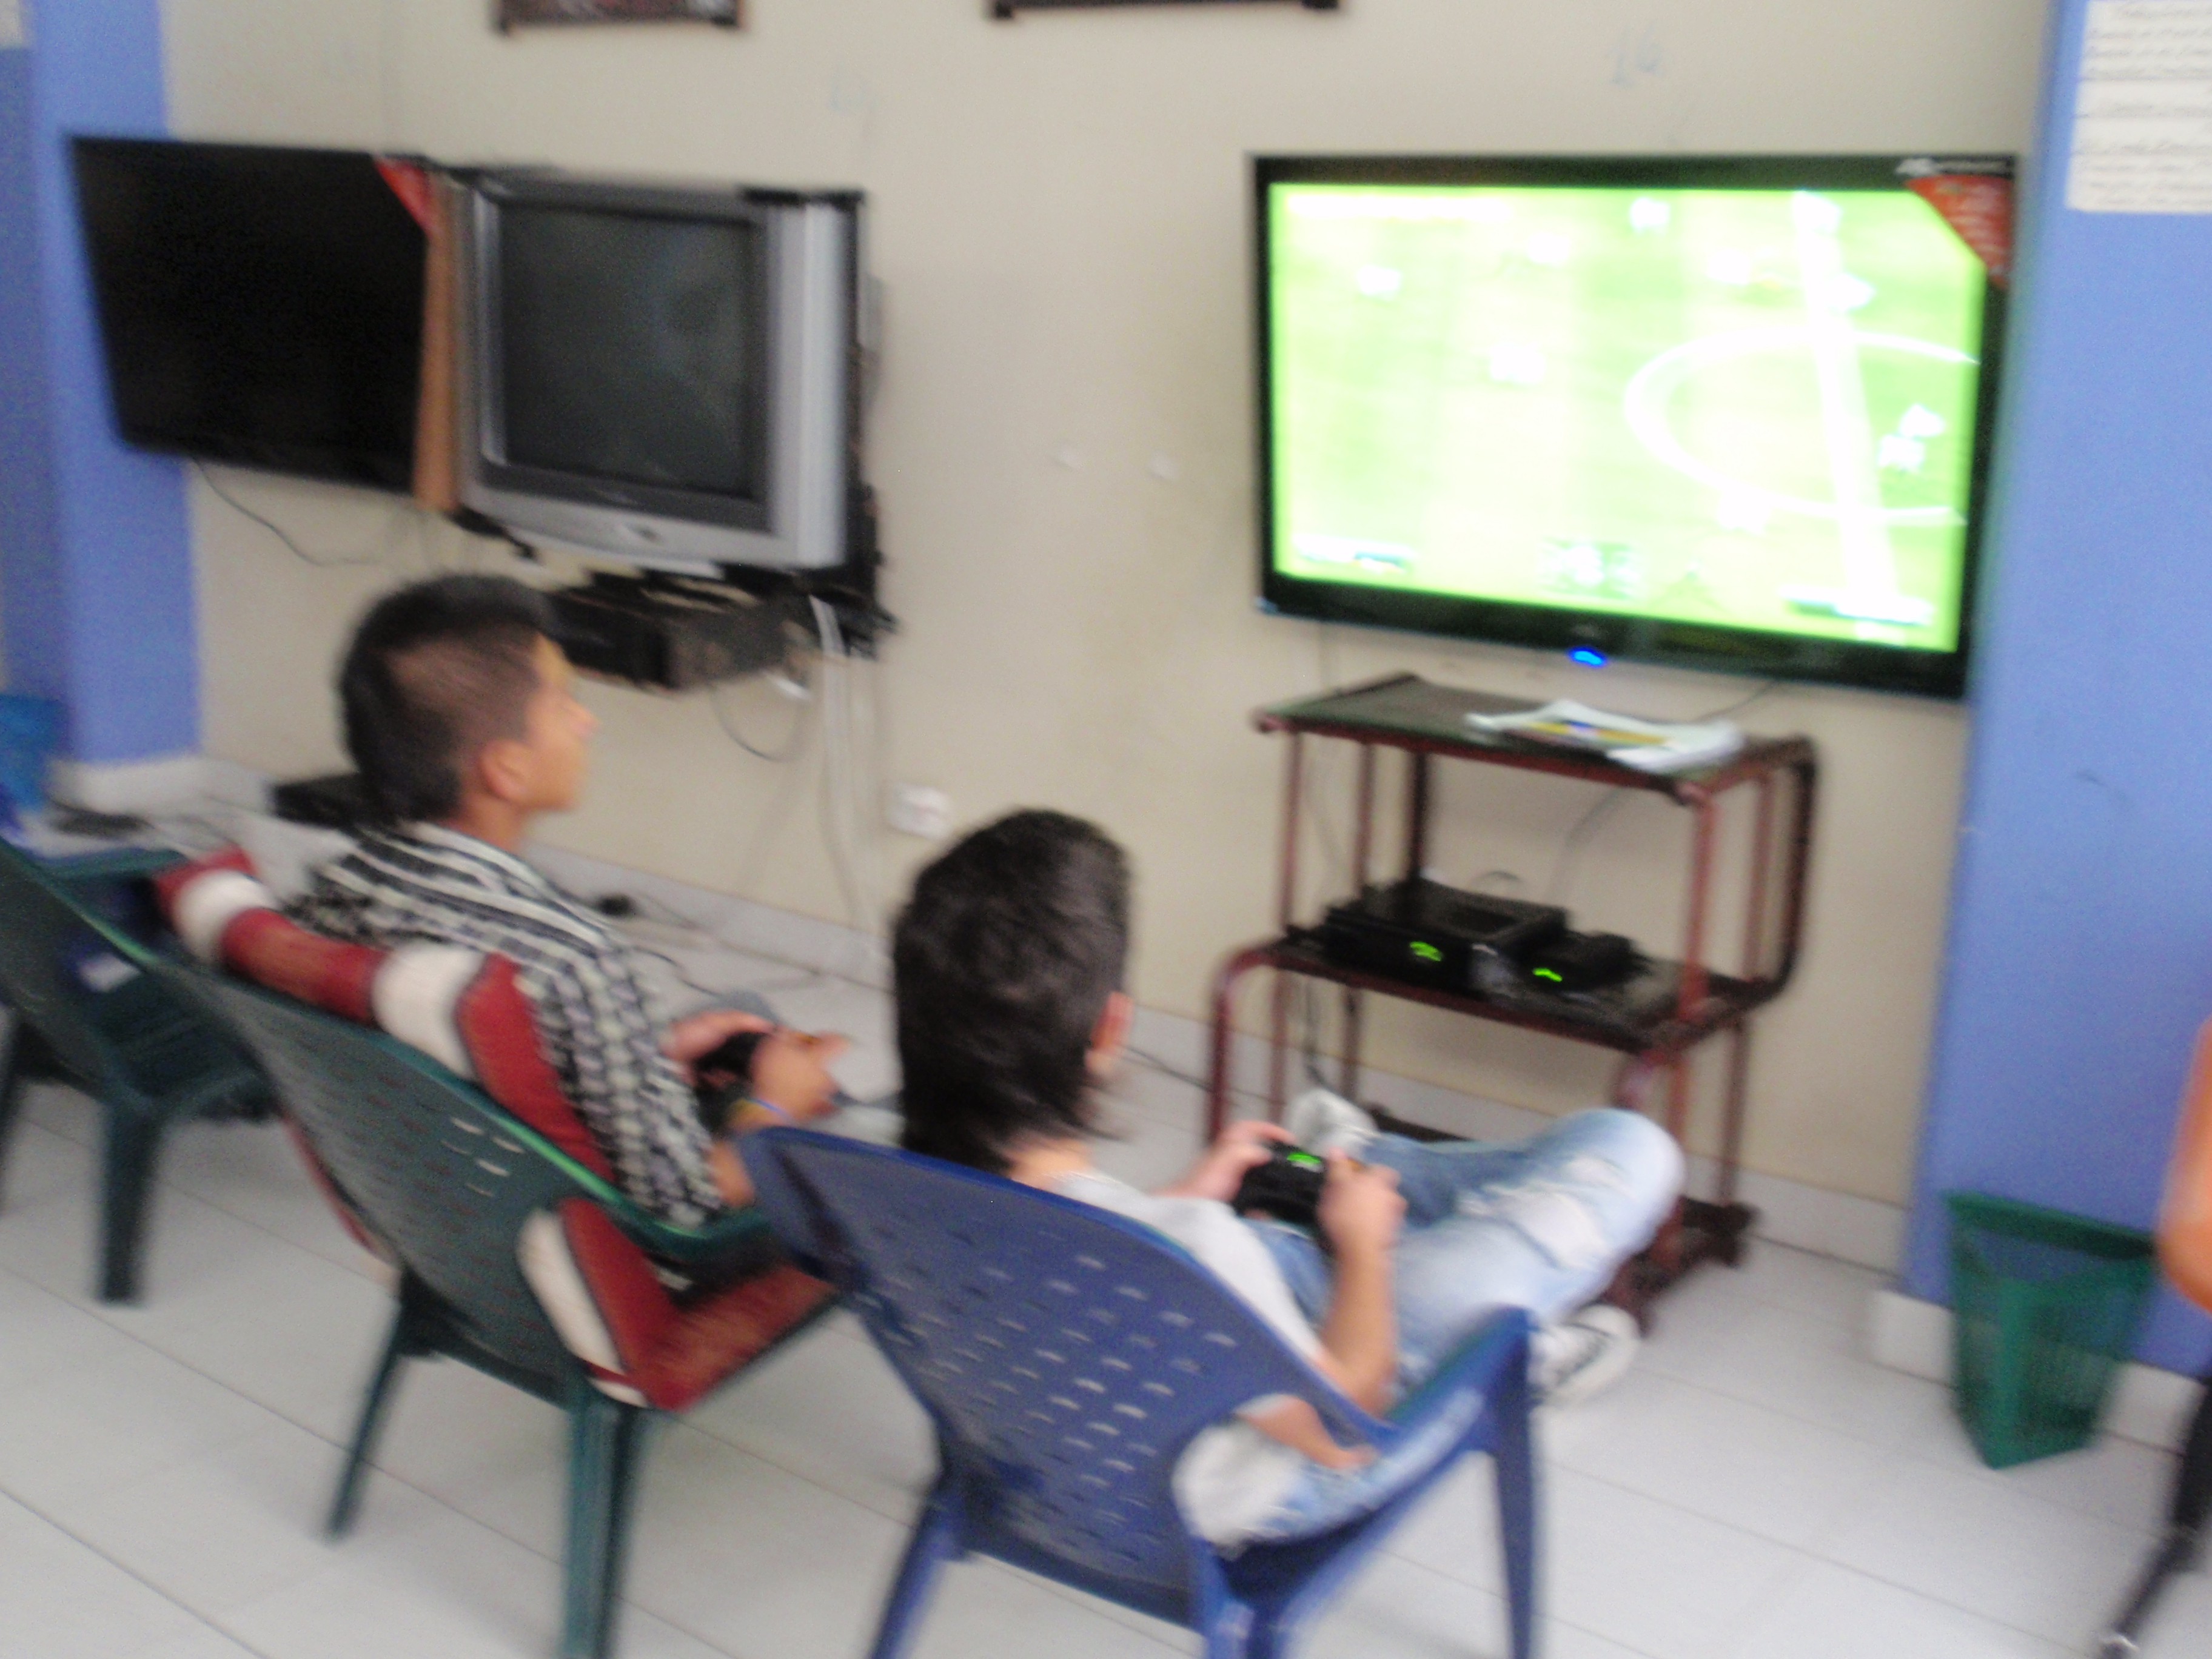 Internet cafe, Colombia two kids playing FIFA